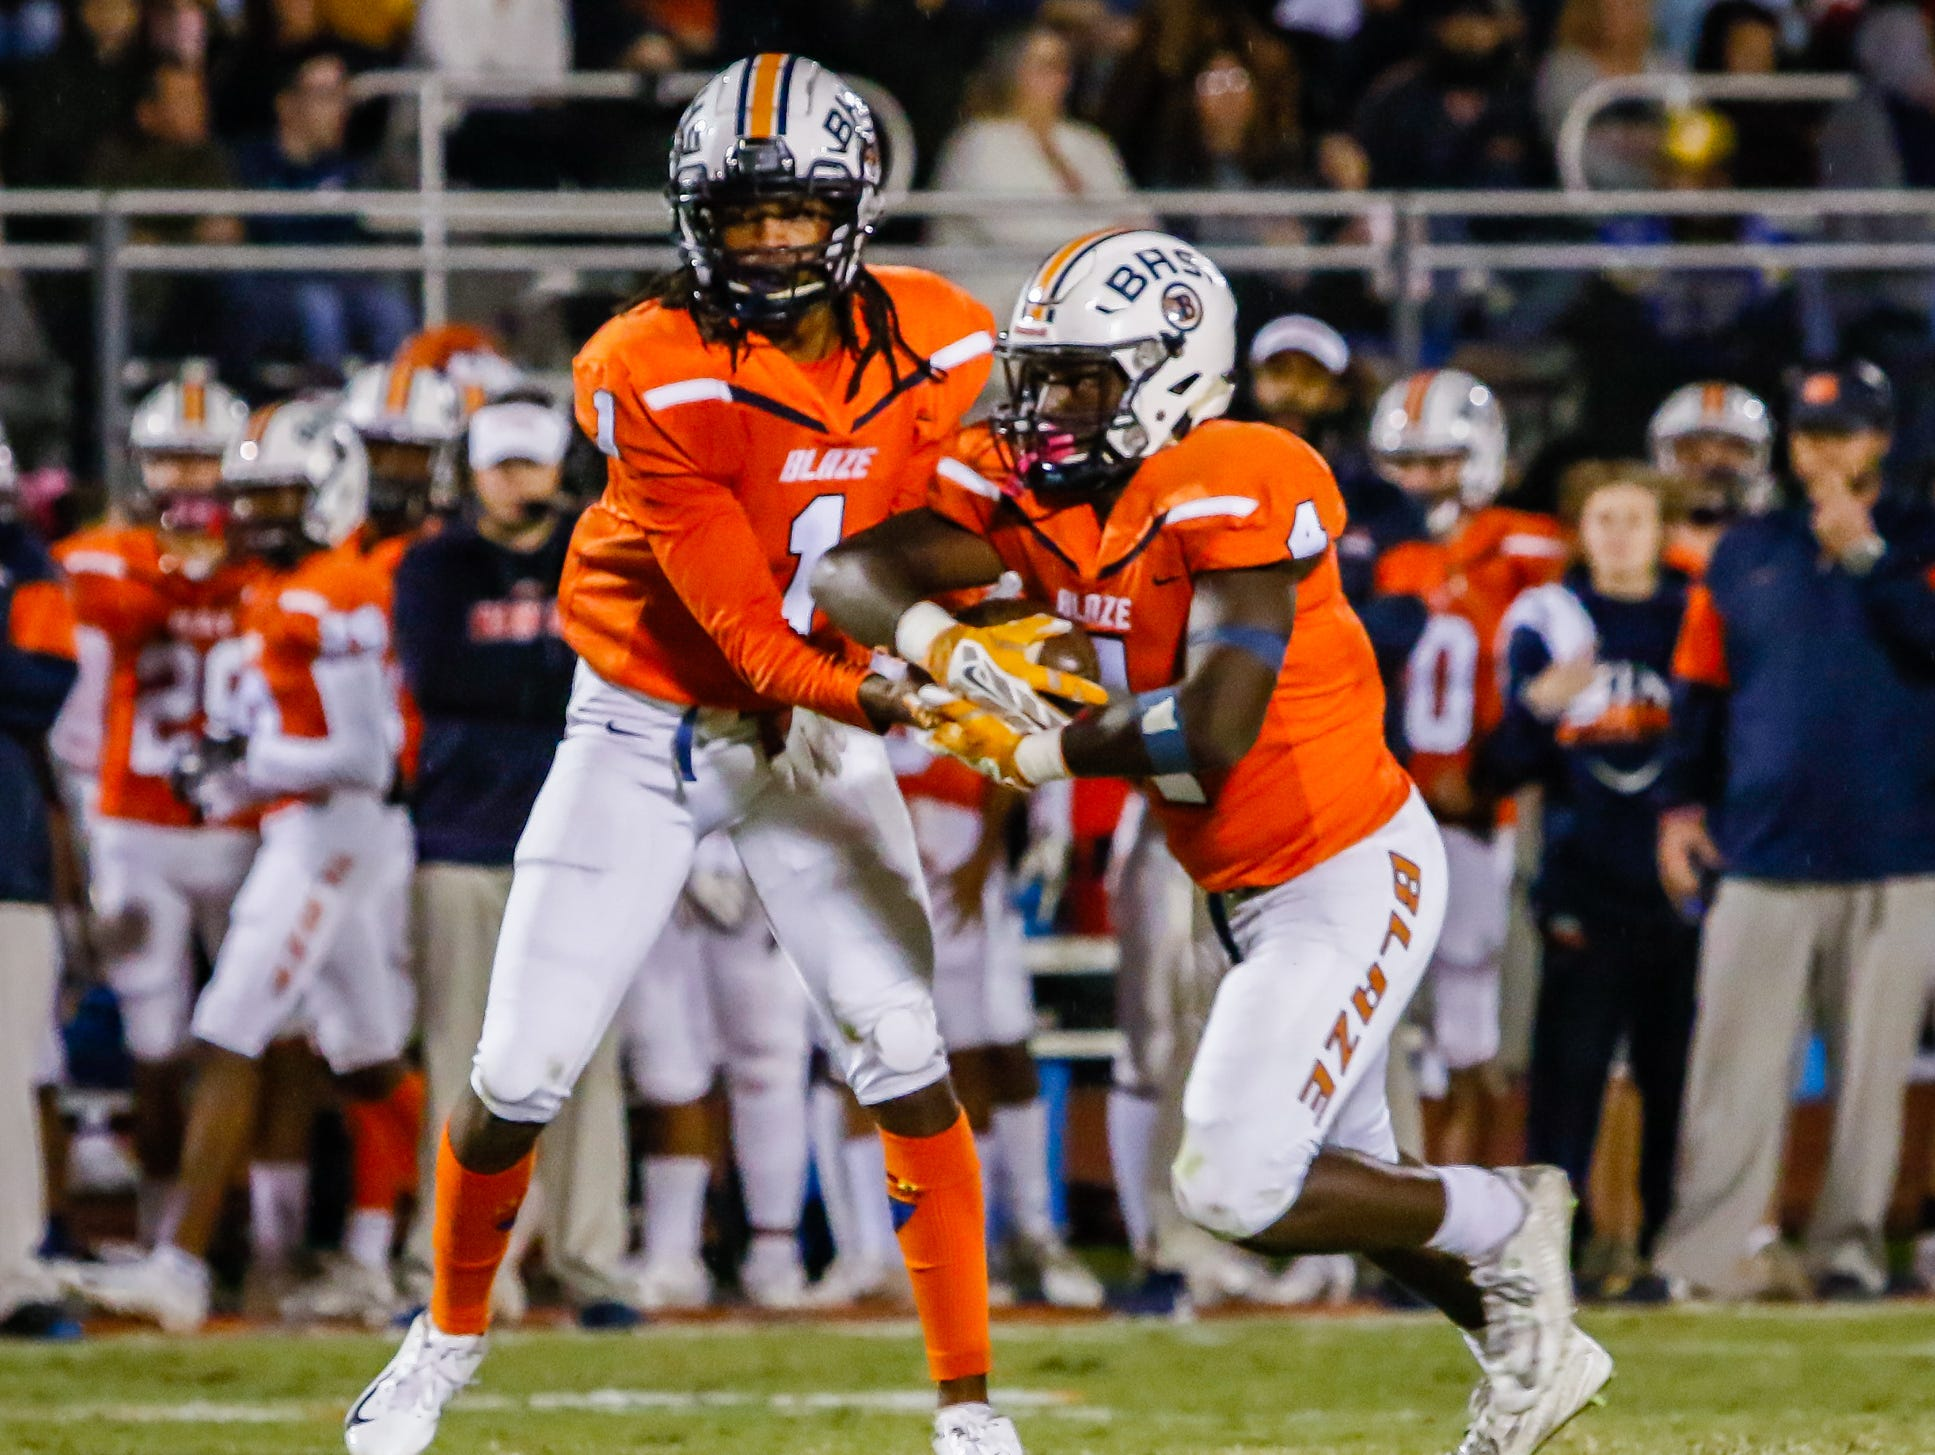 Blackman's Adonis Otey hands off to Jordan Brown in Blackman's win over Cookeville.